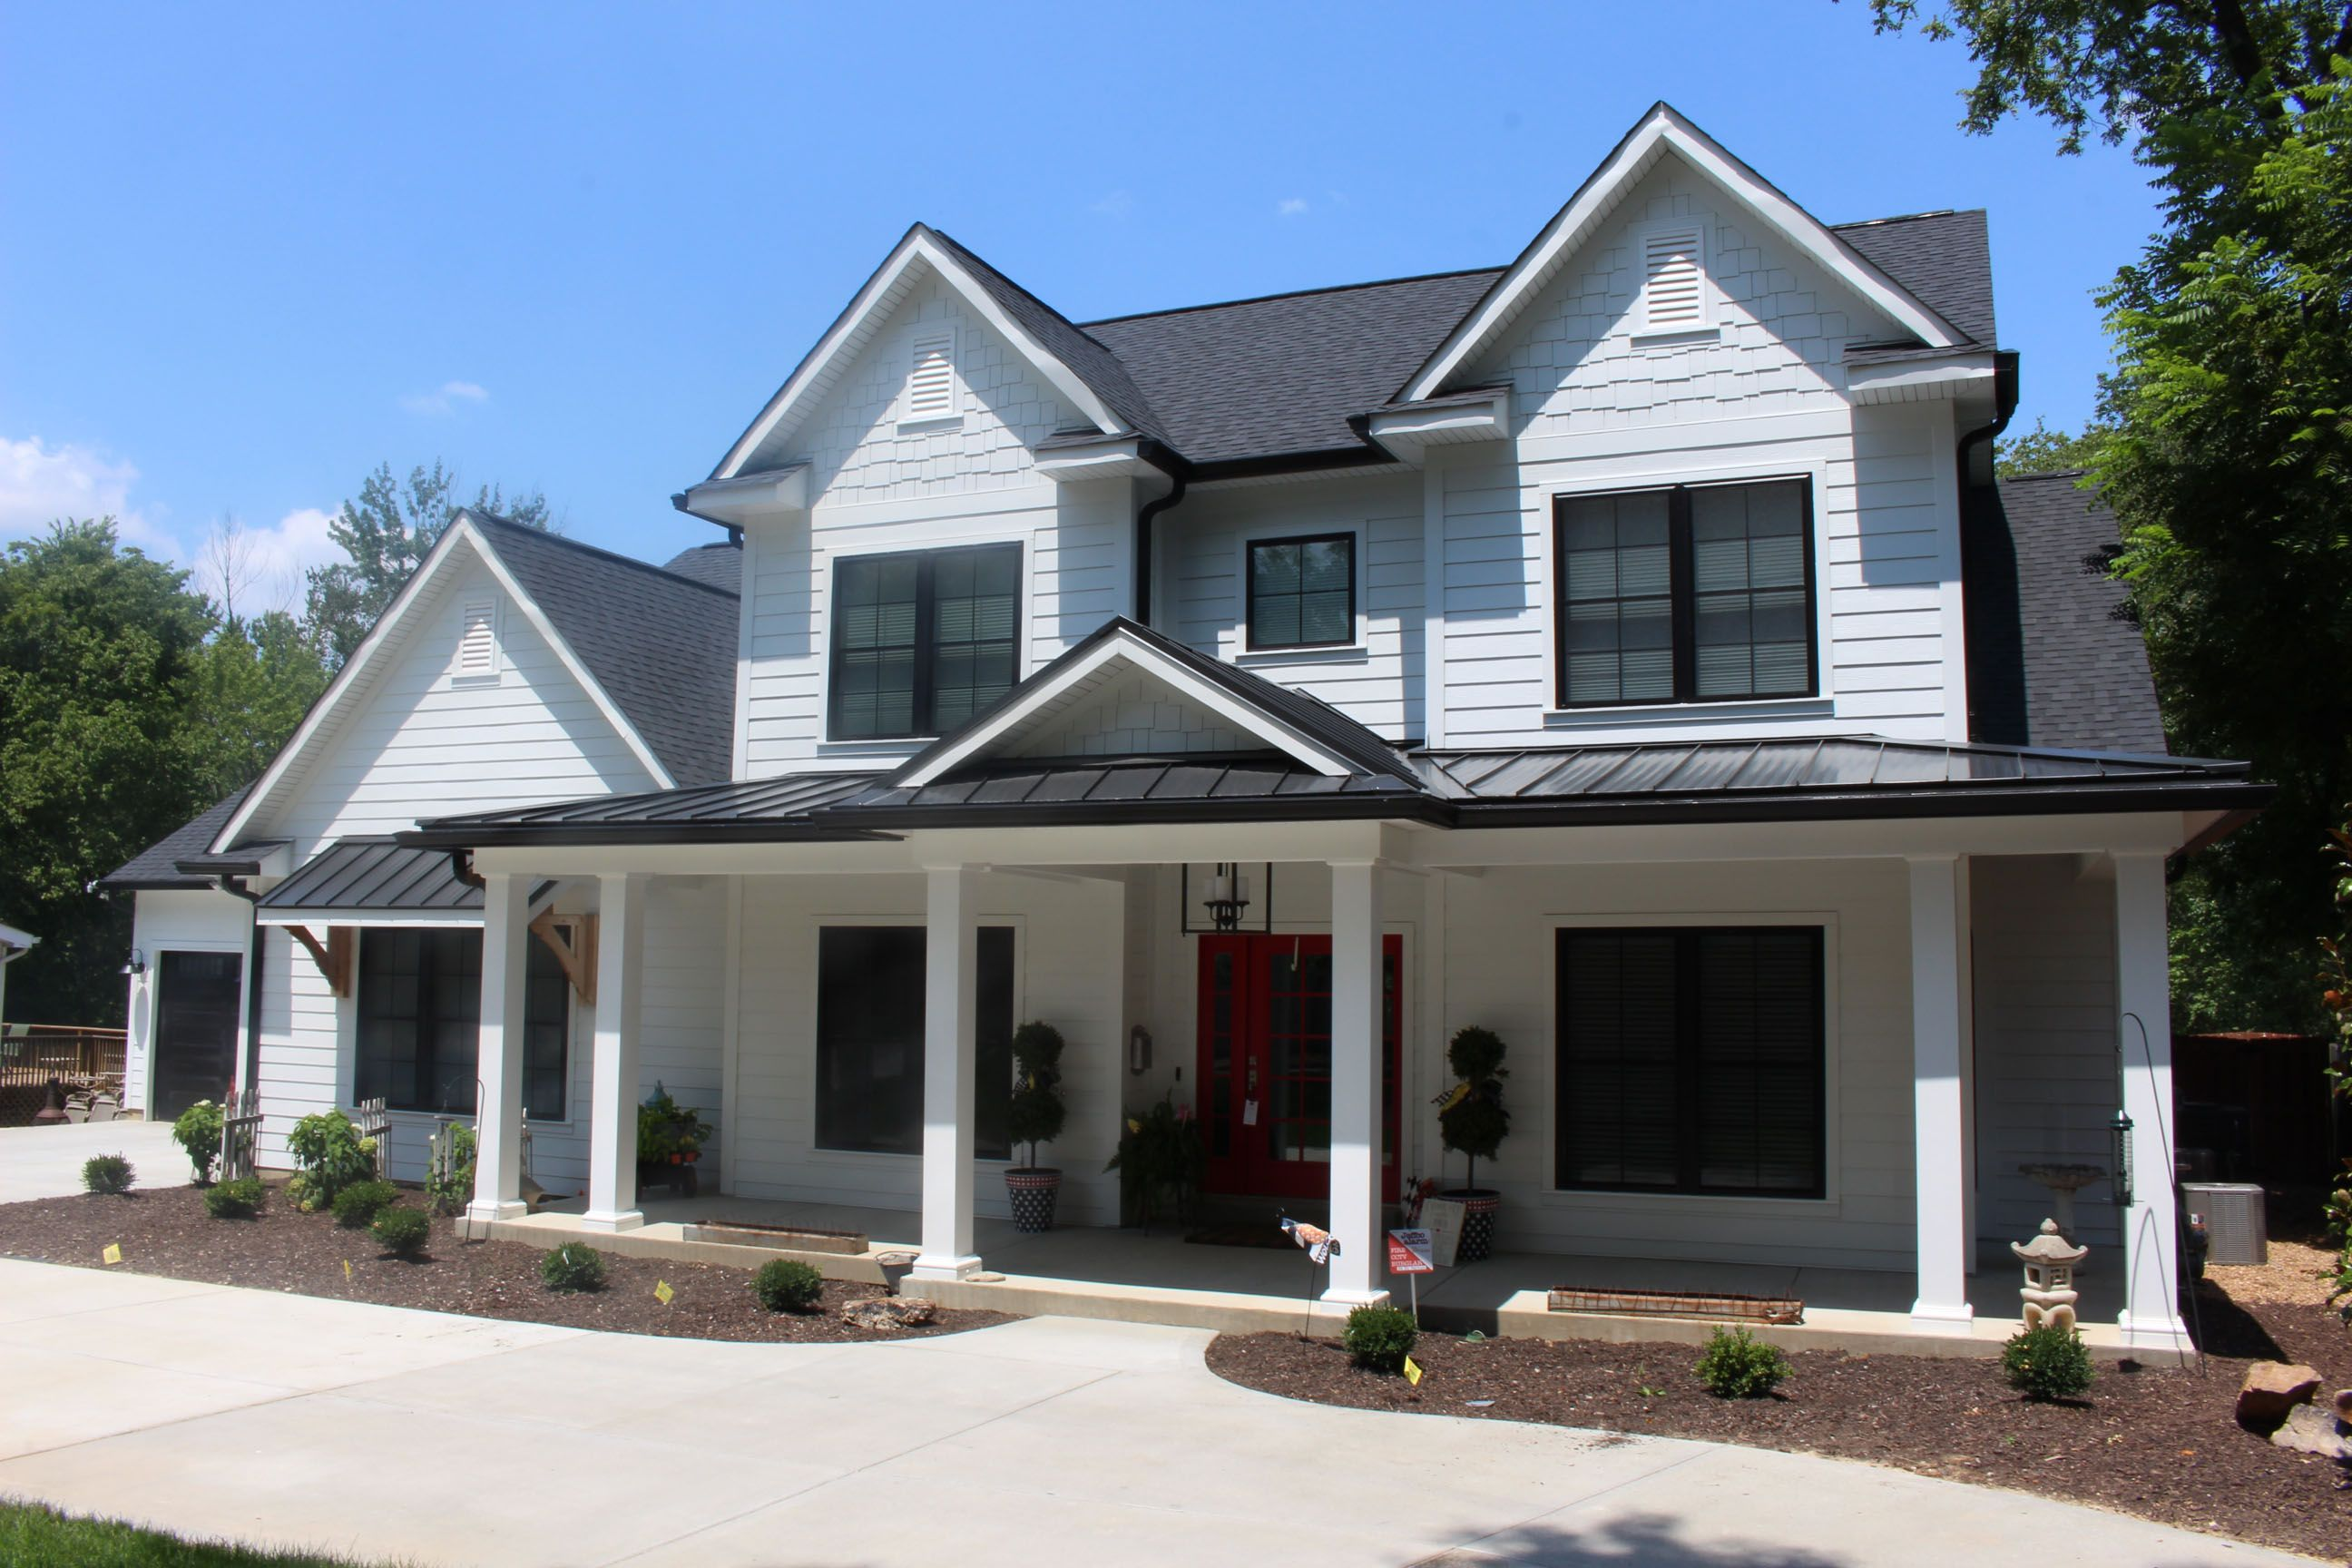 This is a beautiful Modern Farmhouse with James Hardie